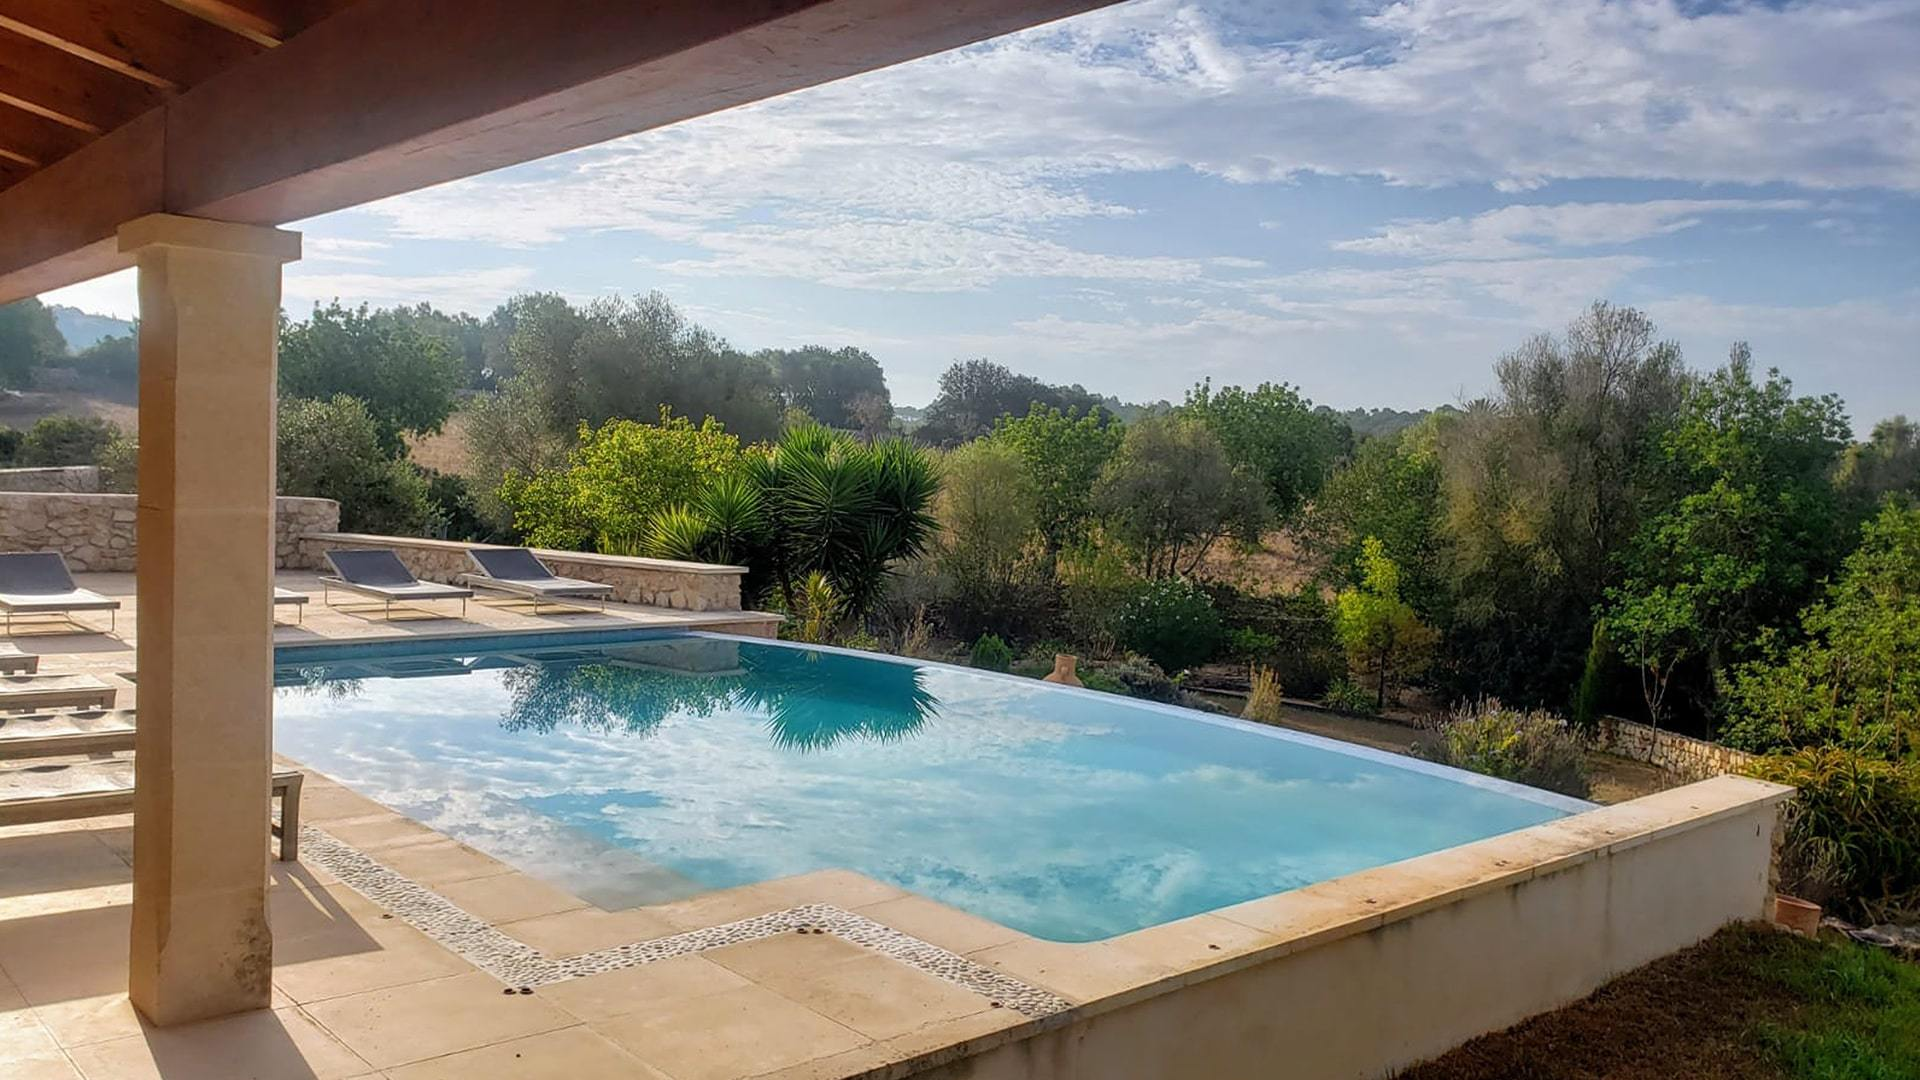 Solysia solar pannels Mallorca pool and view min